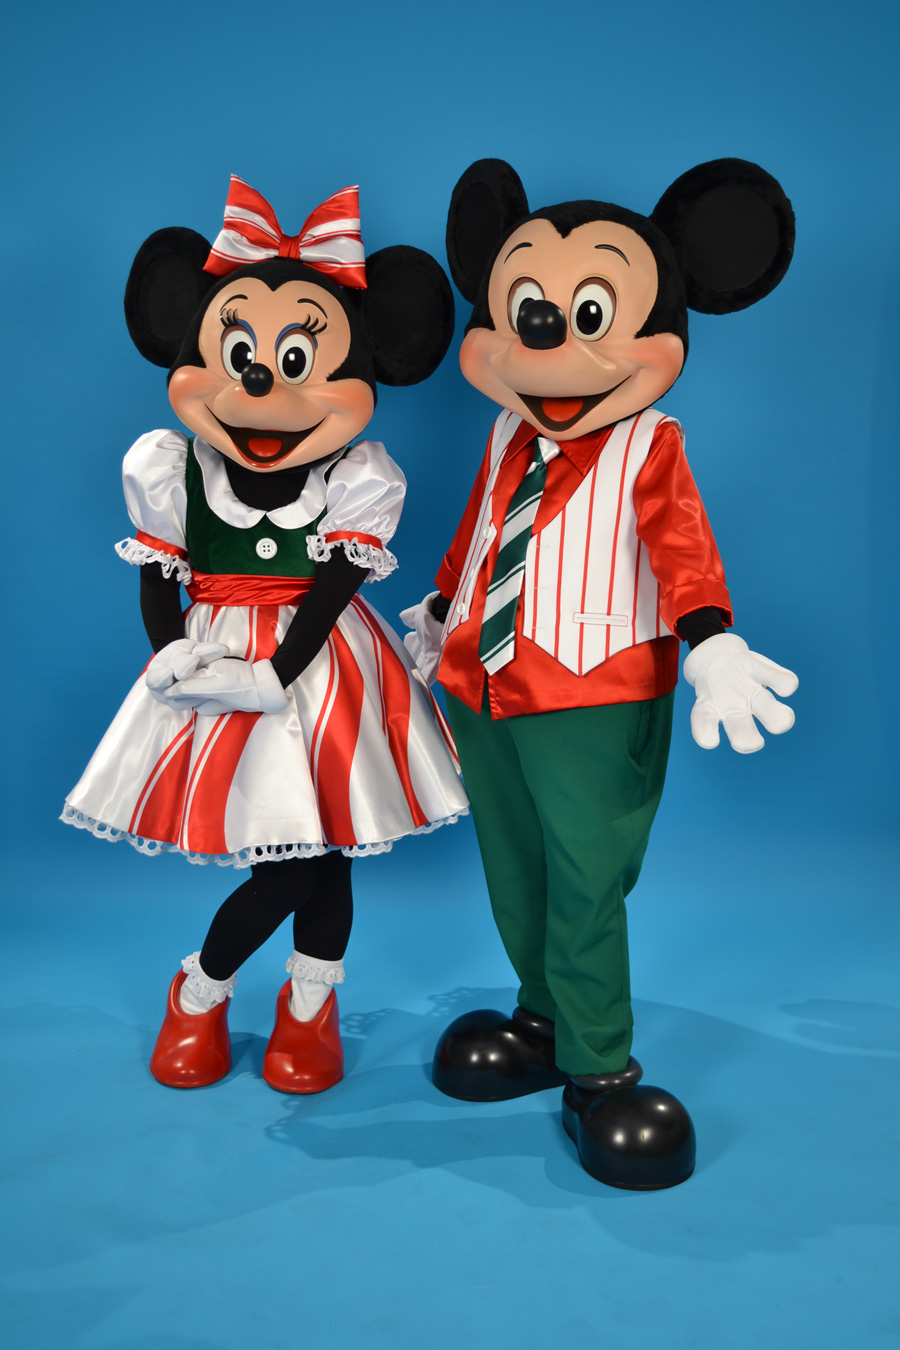 Disney Characters Get Dressed Up for Holiday Fun at Disney Parks ...